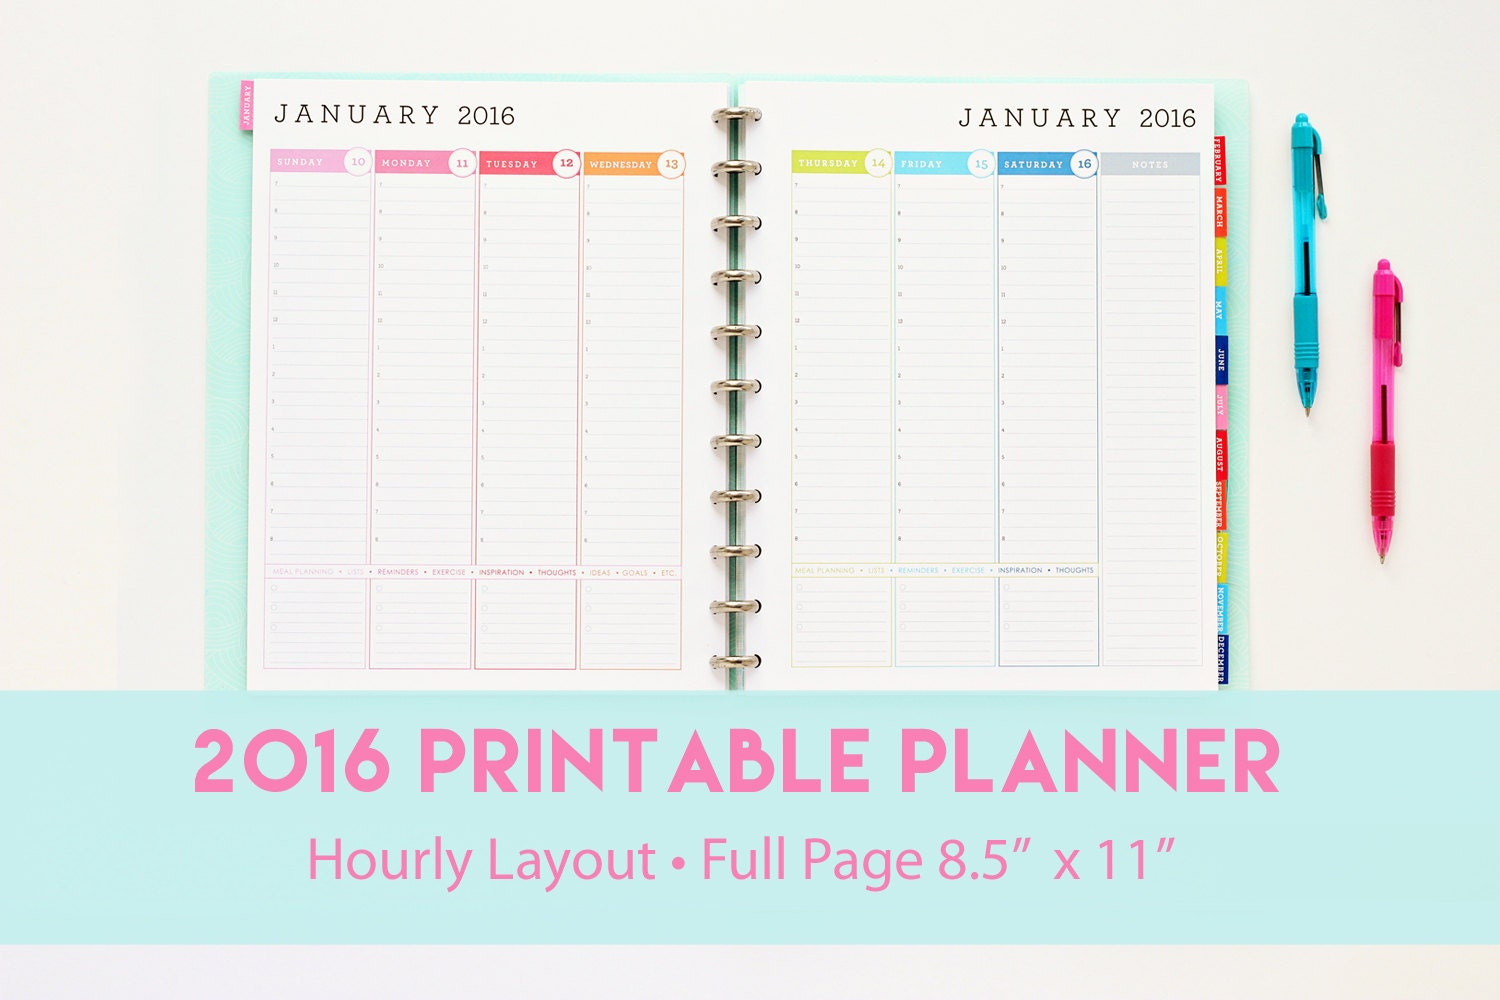 2016 Hourly Planner Printable Weekly Agenda Hourly by 505design